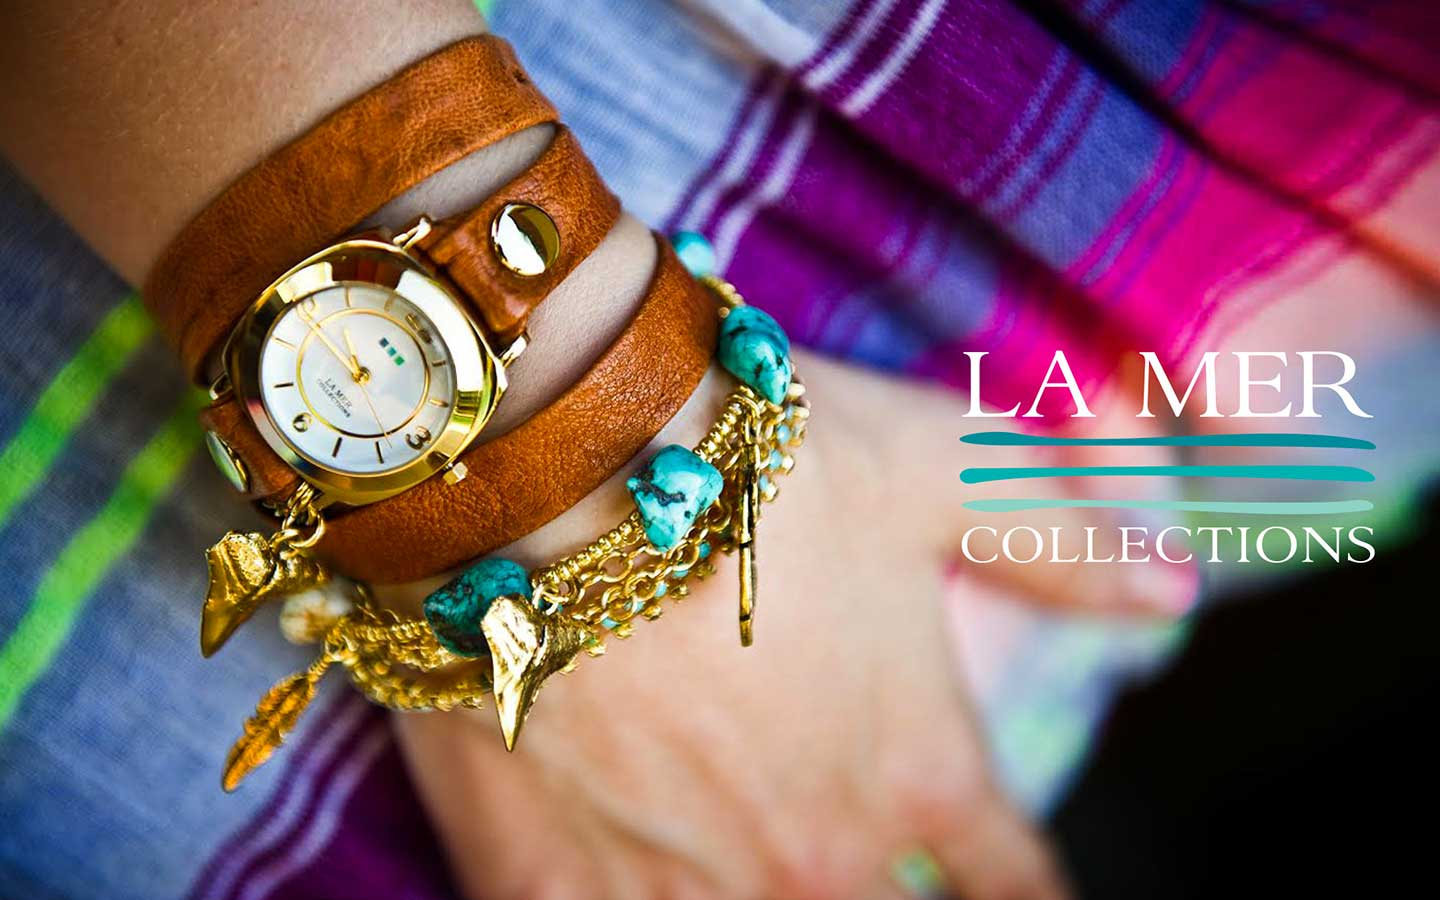 Success Story About 'La Mer Collections' Online Store